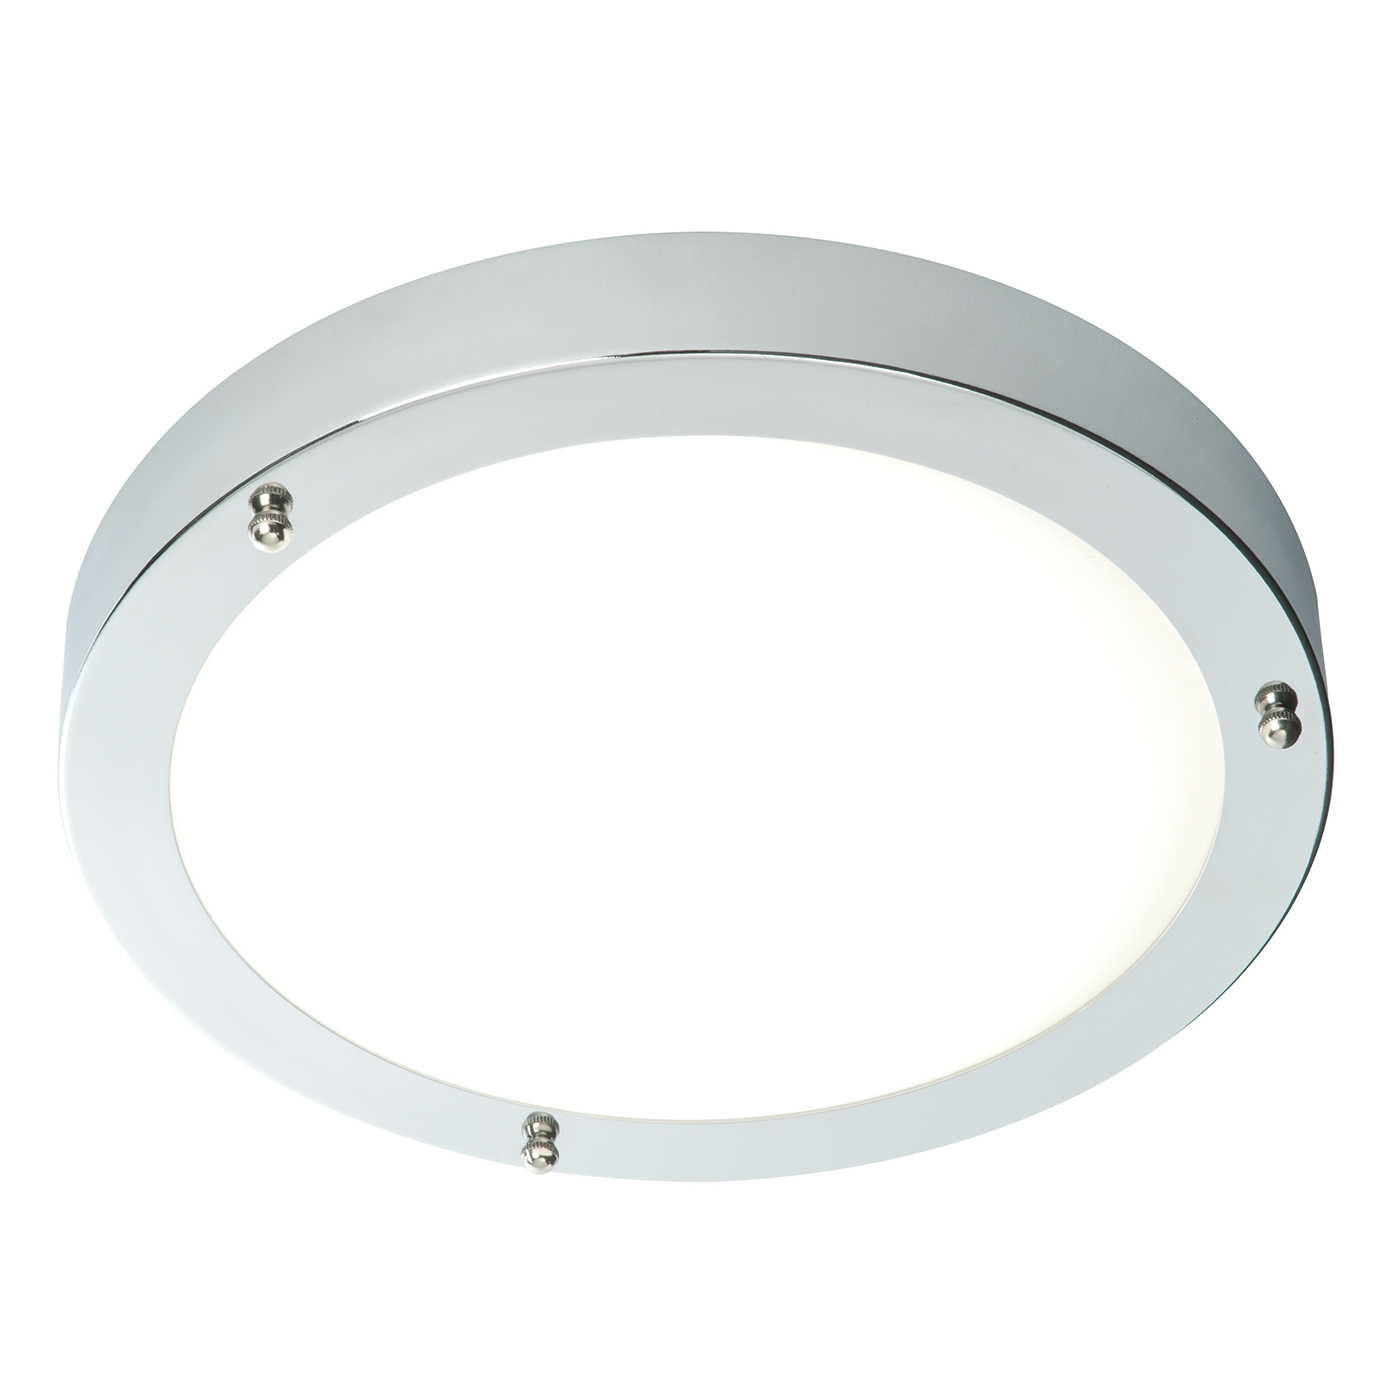 Endon Portico 300mm flush bathroom ceiling light IP44 60W chrome glass